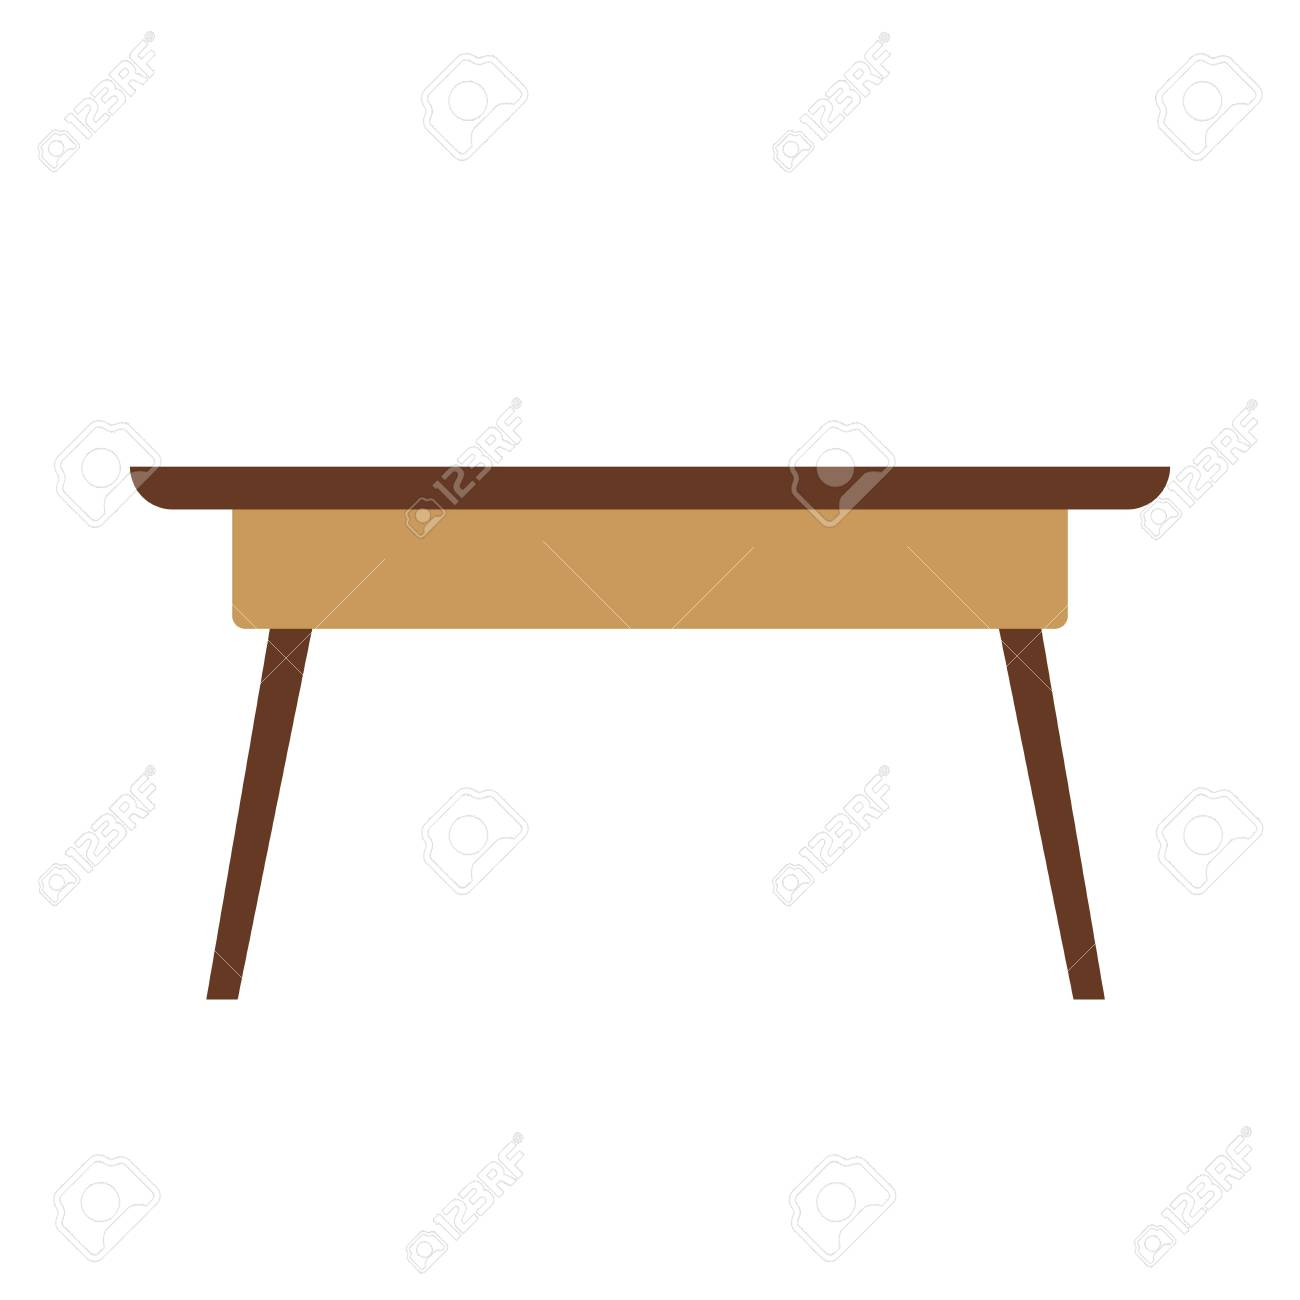 Superieur Small Wooden Table Stock Vector   76700027